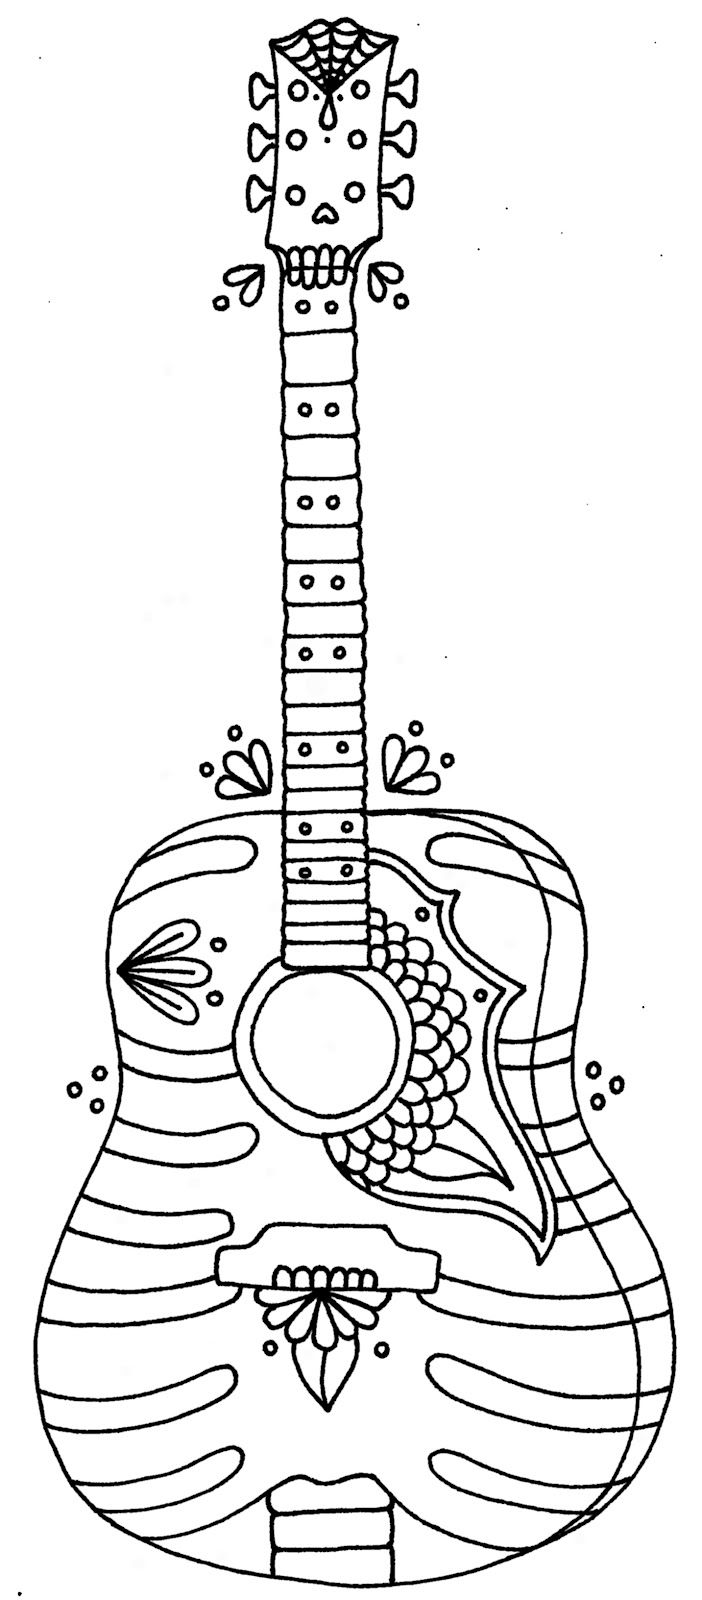 Color zen music - Guitar Coloring Pages 9